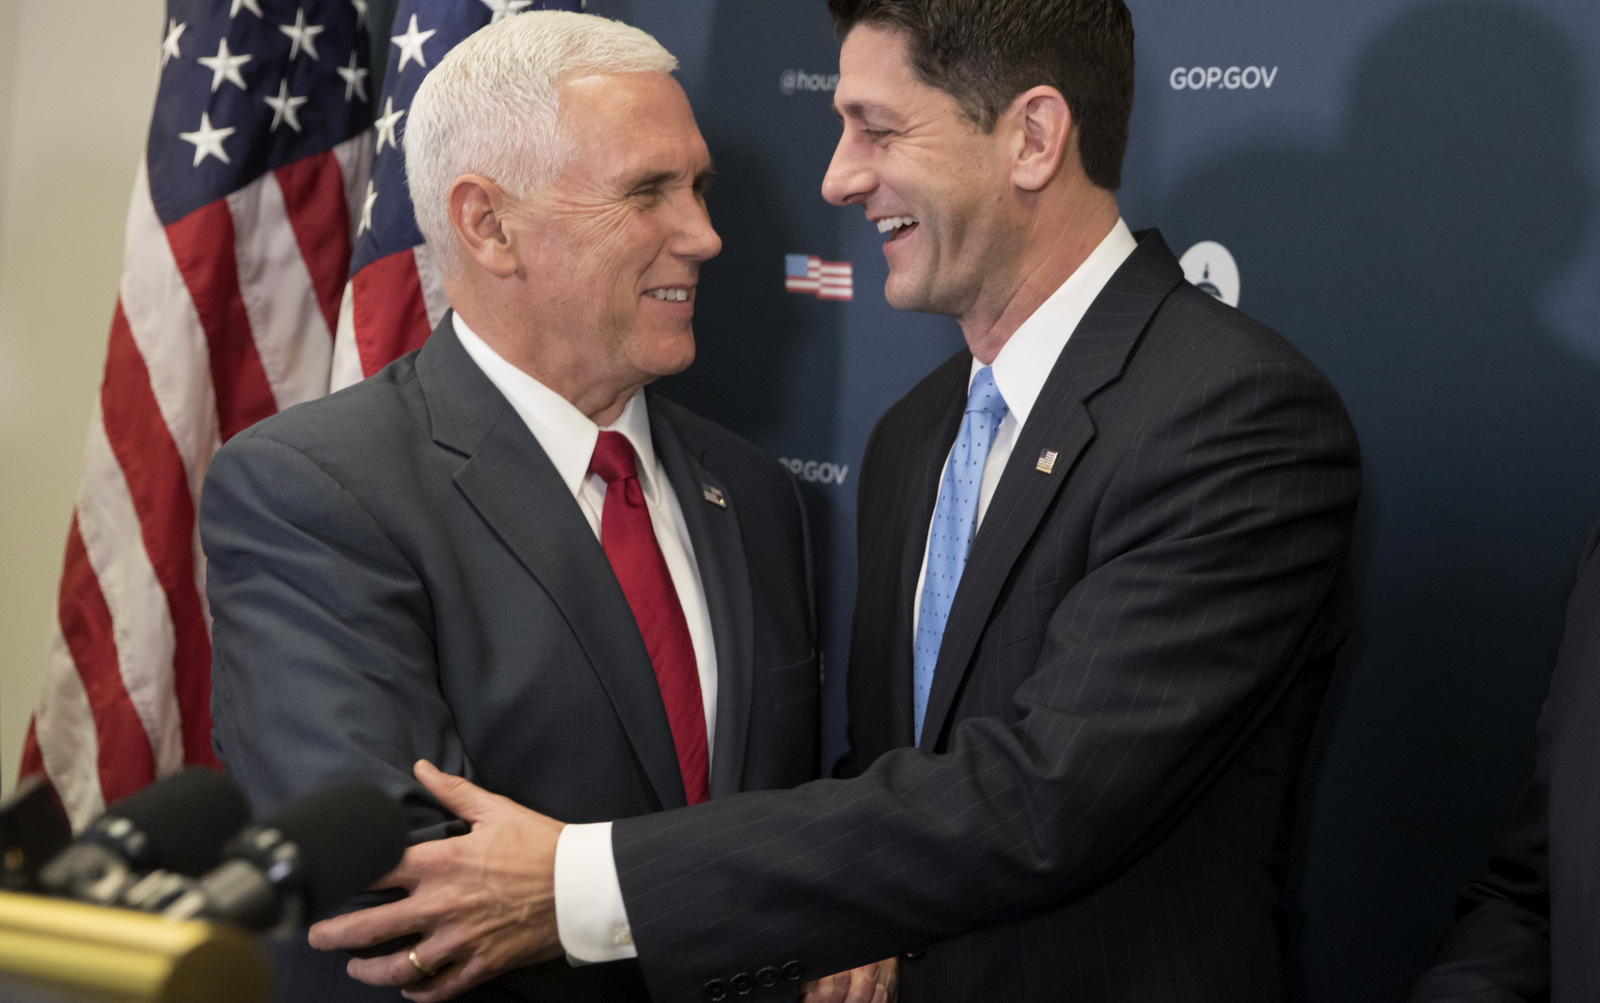 Vice President-elect Mike Pence is welcomed at a news conference on Capitol Hill in Washington, Wednesday, Jan. 4, 2017, by House Speaker Paul Ryan of Wis. following a closed-door meeting with the GOP caucus. (AP/J. Scott Applewhite)